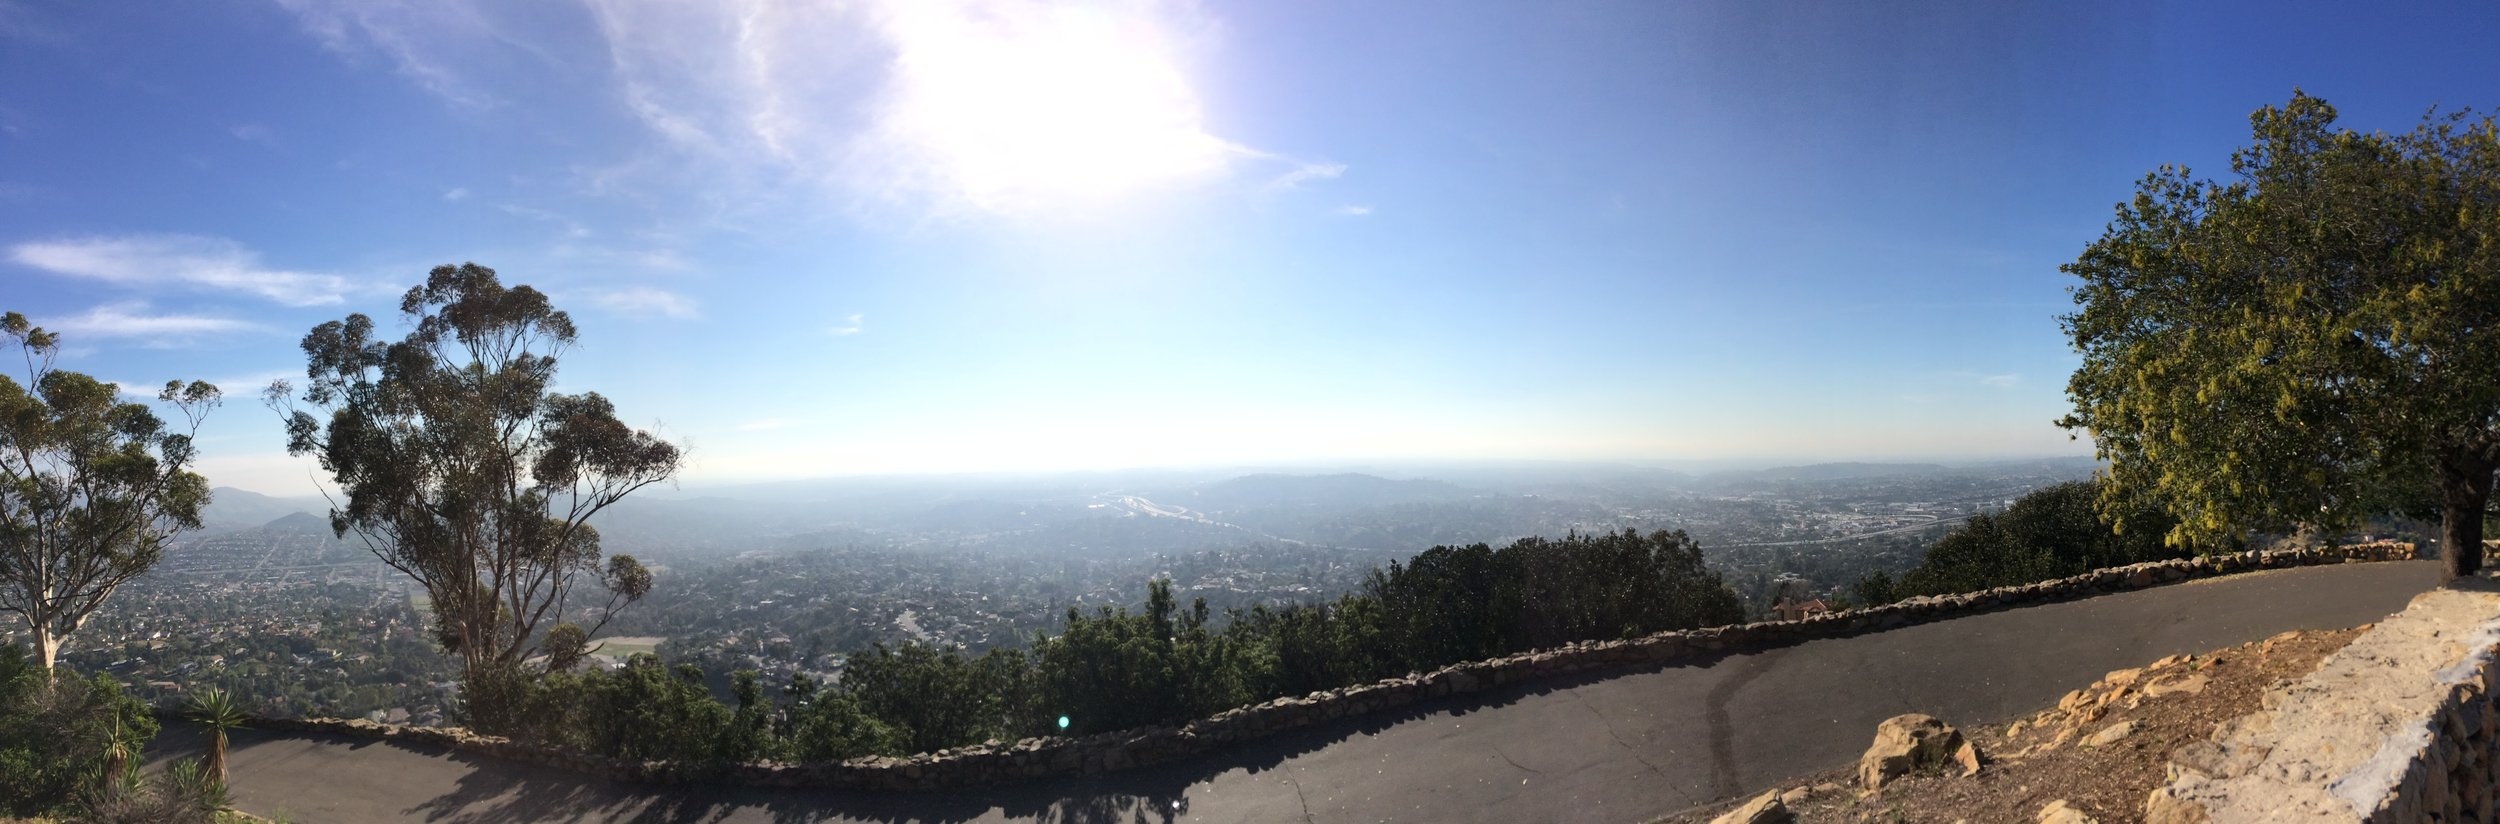 Mount Helix, a place with fantastic views, and possibly, one lonesome ghost.